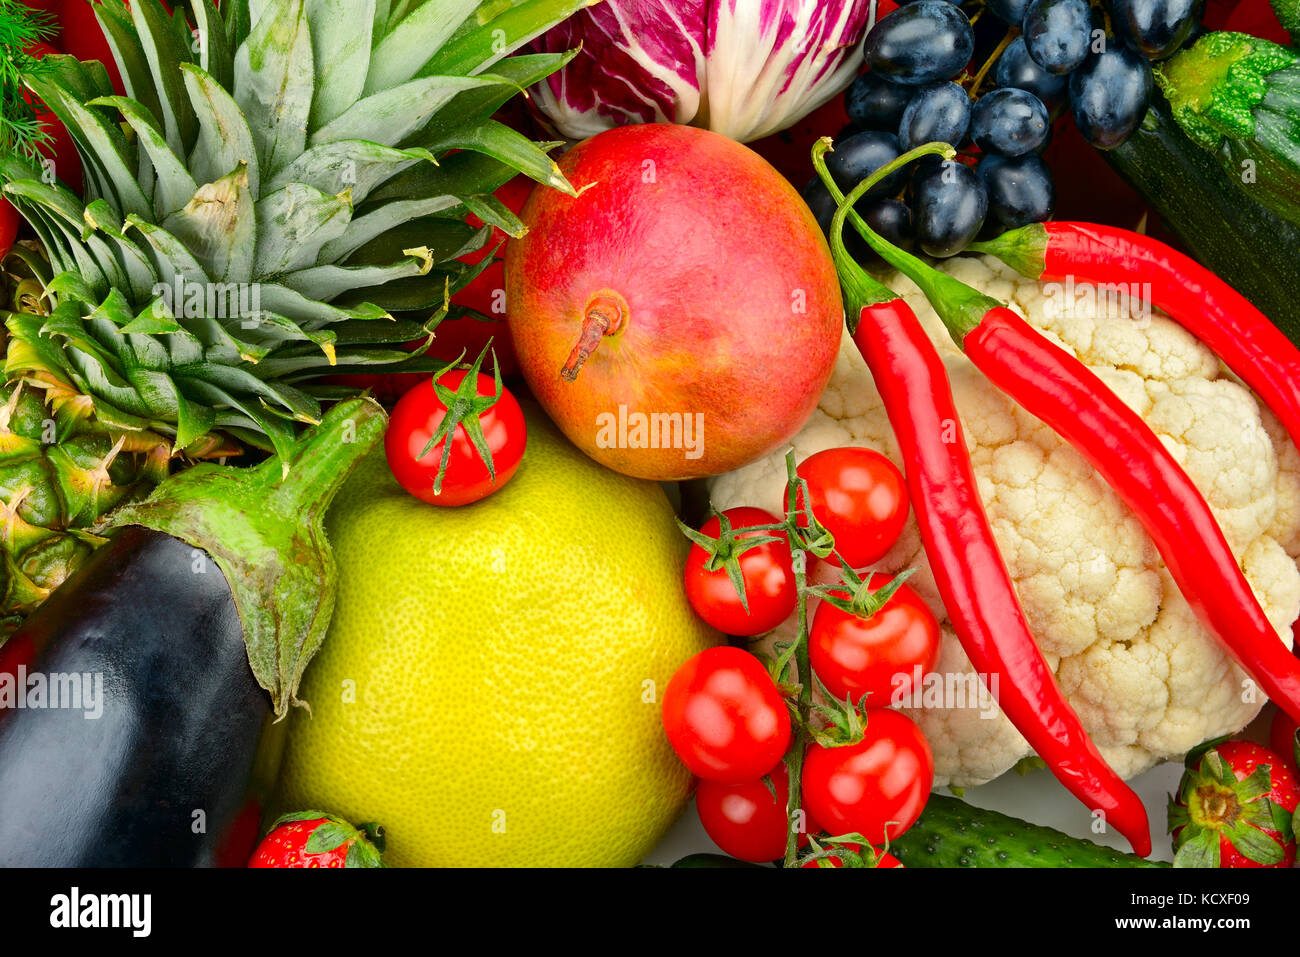 assortment fresh fruits and vegetables isolated on white - Stock Image